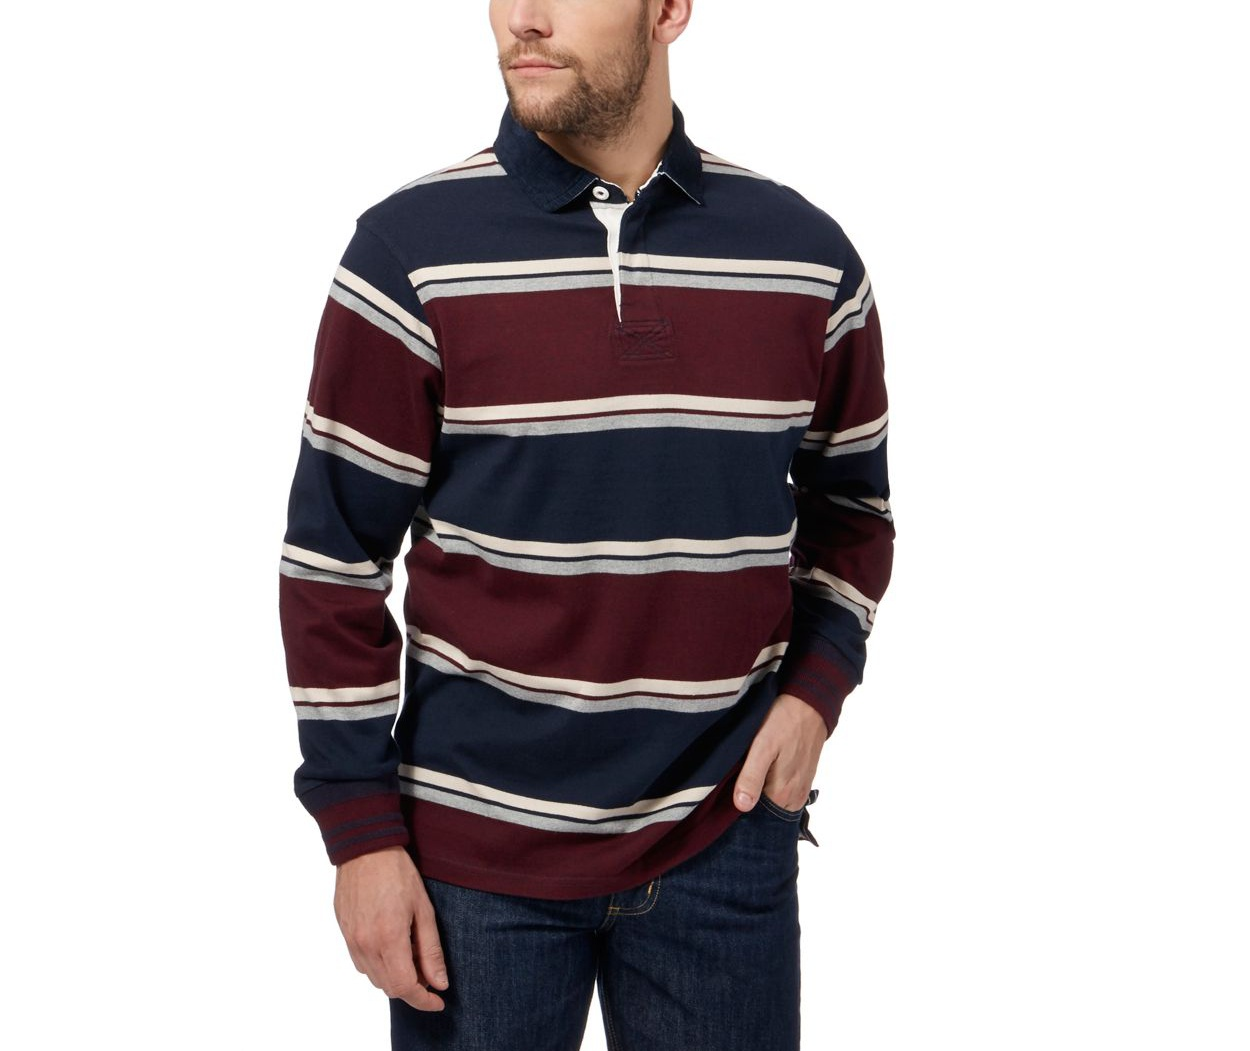 Maine New England Maroon stripe rugby shirt